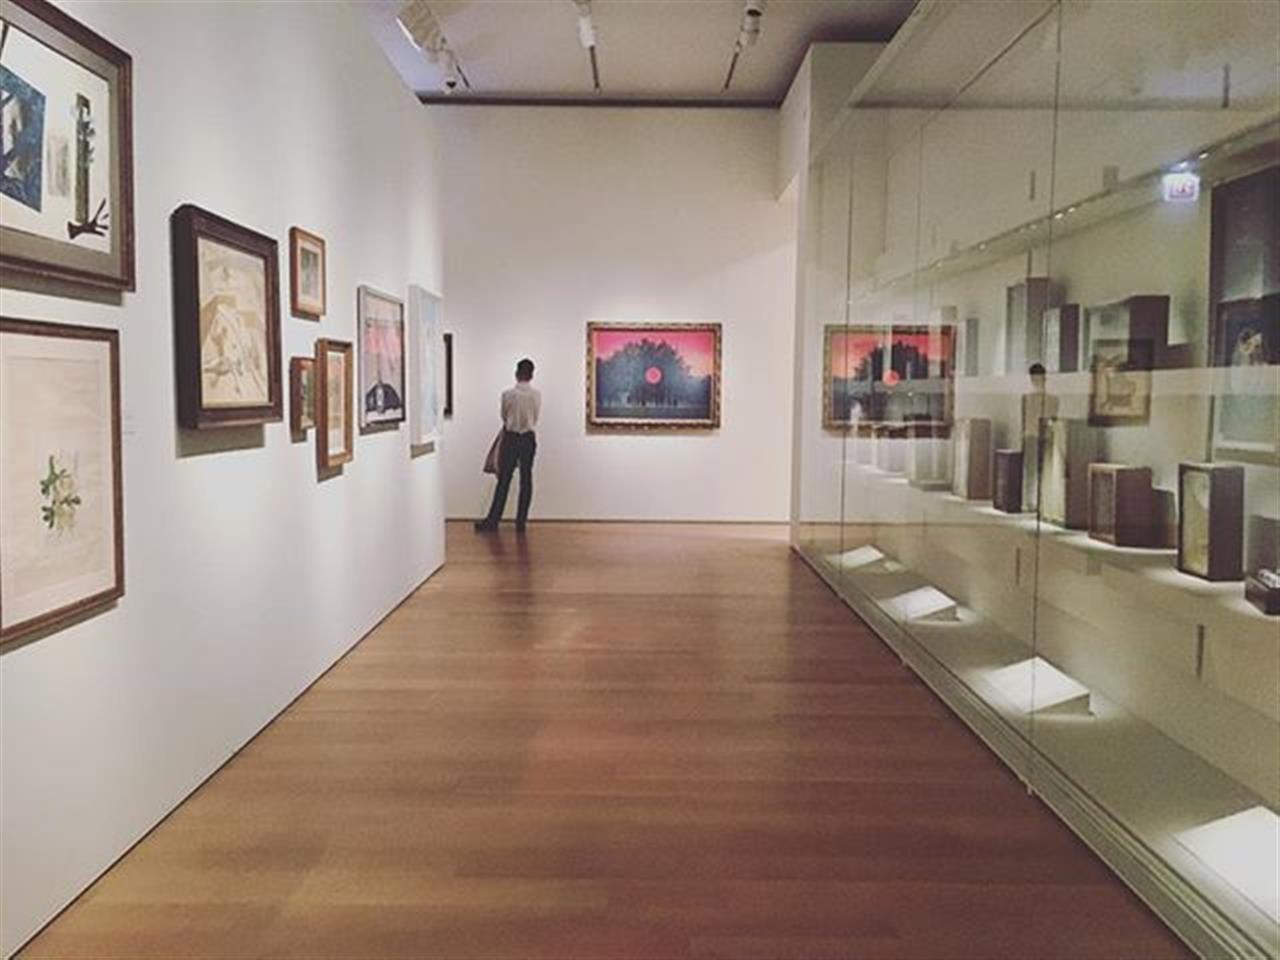 Take a beat in the Art Institute's Modern Wing. It's a good spot to find your thoughts. #artinstituteofchicago #escape #chicago #culture #bairdandwarner #bairdwarner #realestate #relocation #modernart